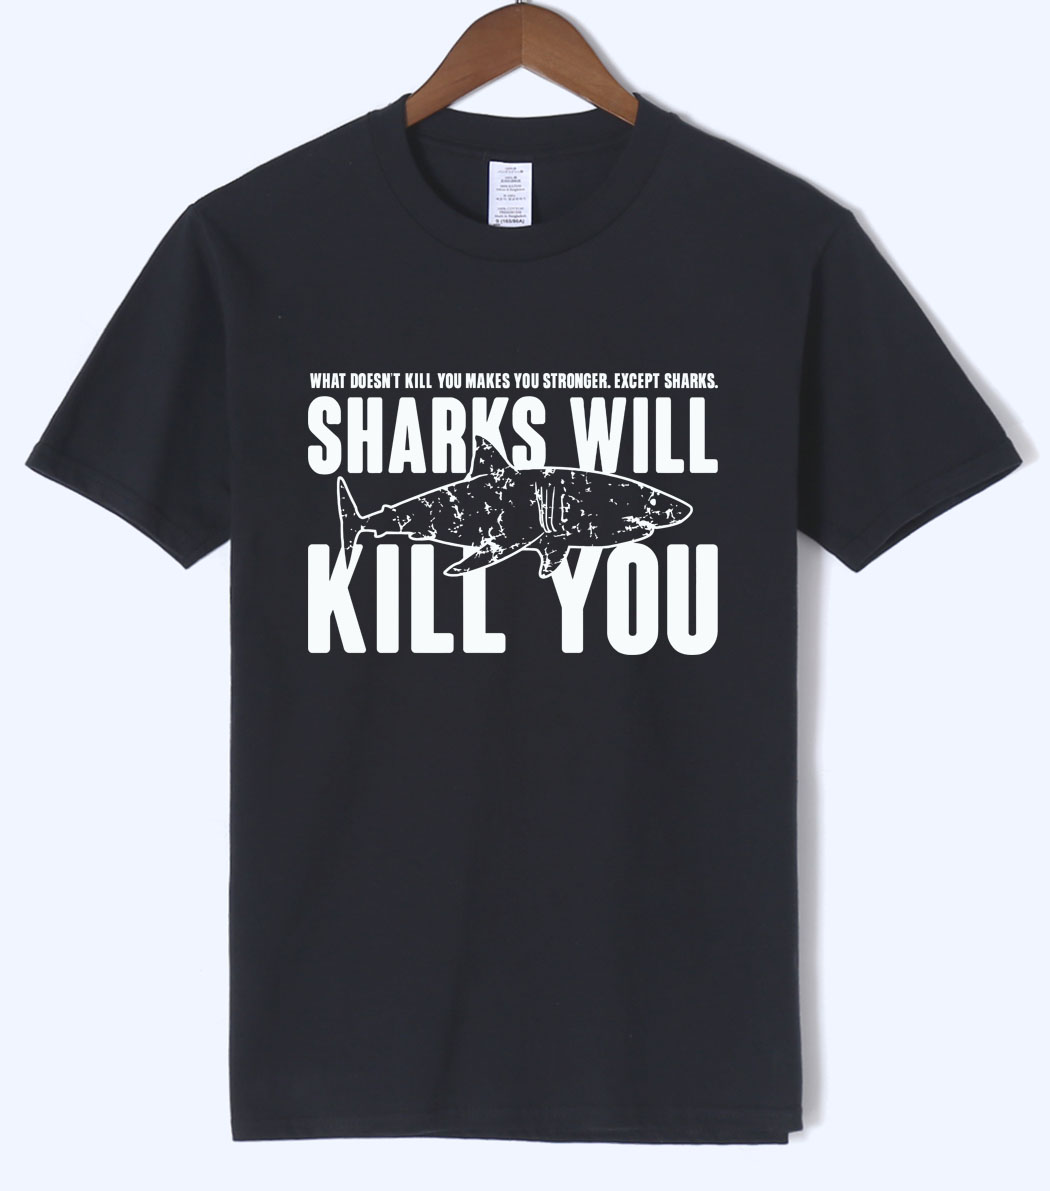 Brand Blothing Sharks Will Kill You Letters Print Funny Top Tees 2018 Summer Men T Shirts 100% Cotton Short Sleeve Adult T-Shirt